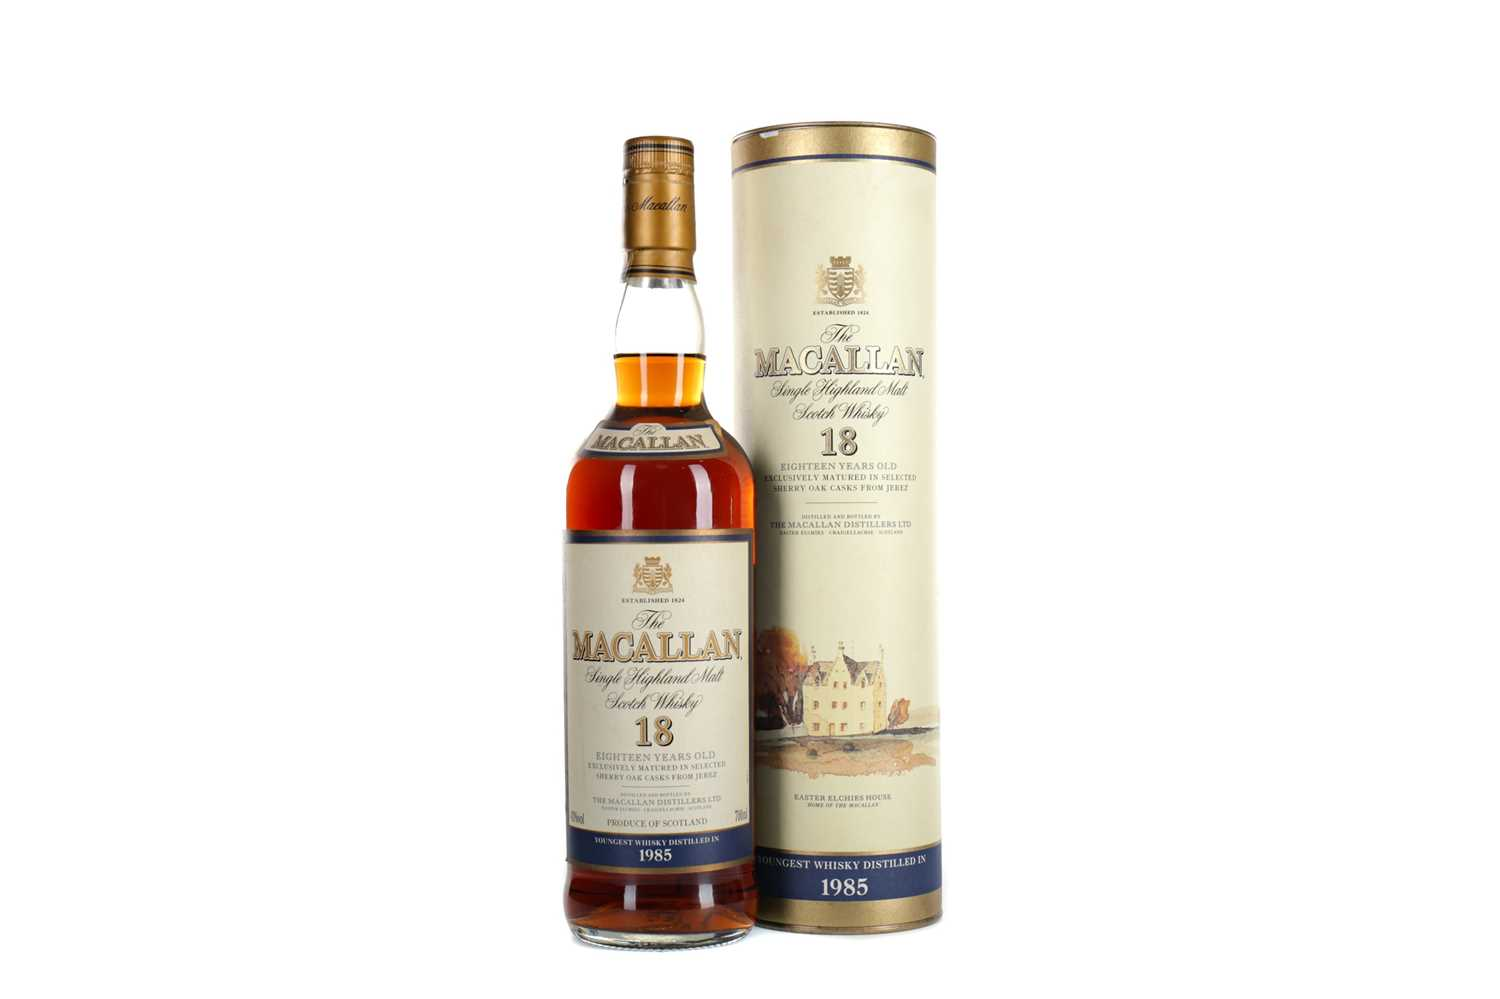 Lot 133 - MACALLAN 1985 18 YEARS OLD